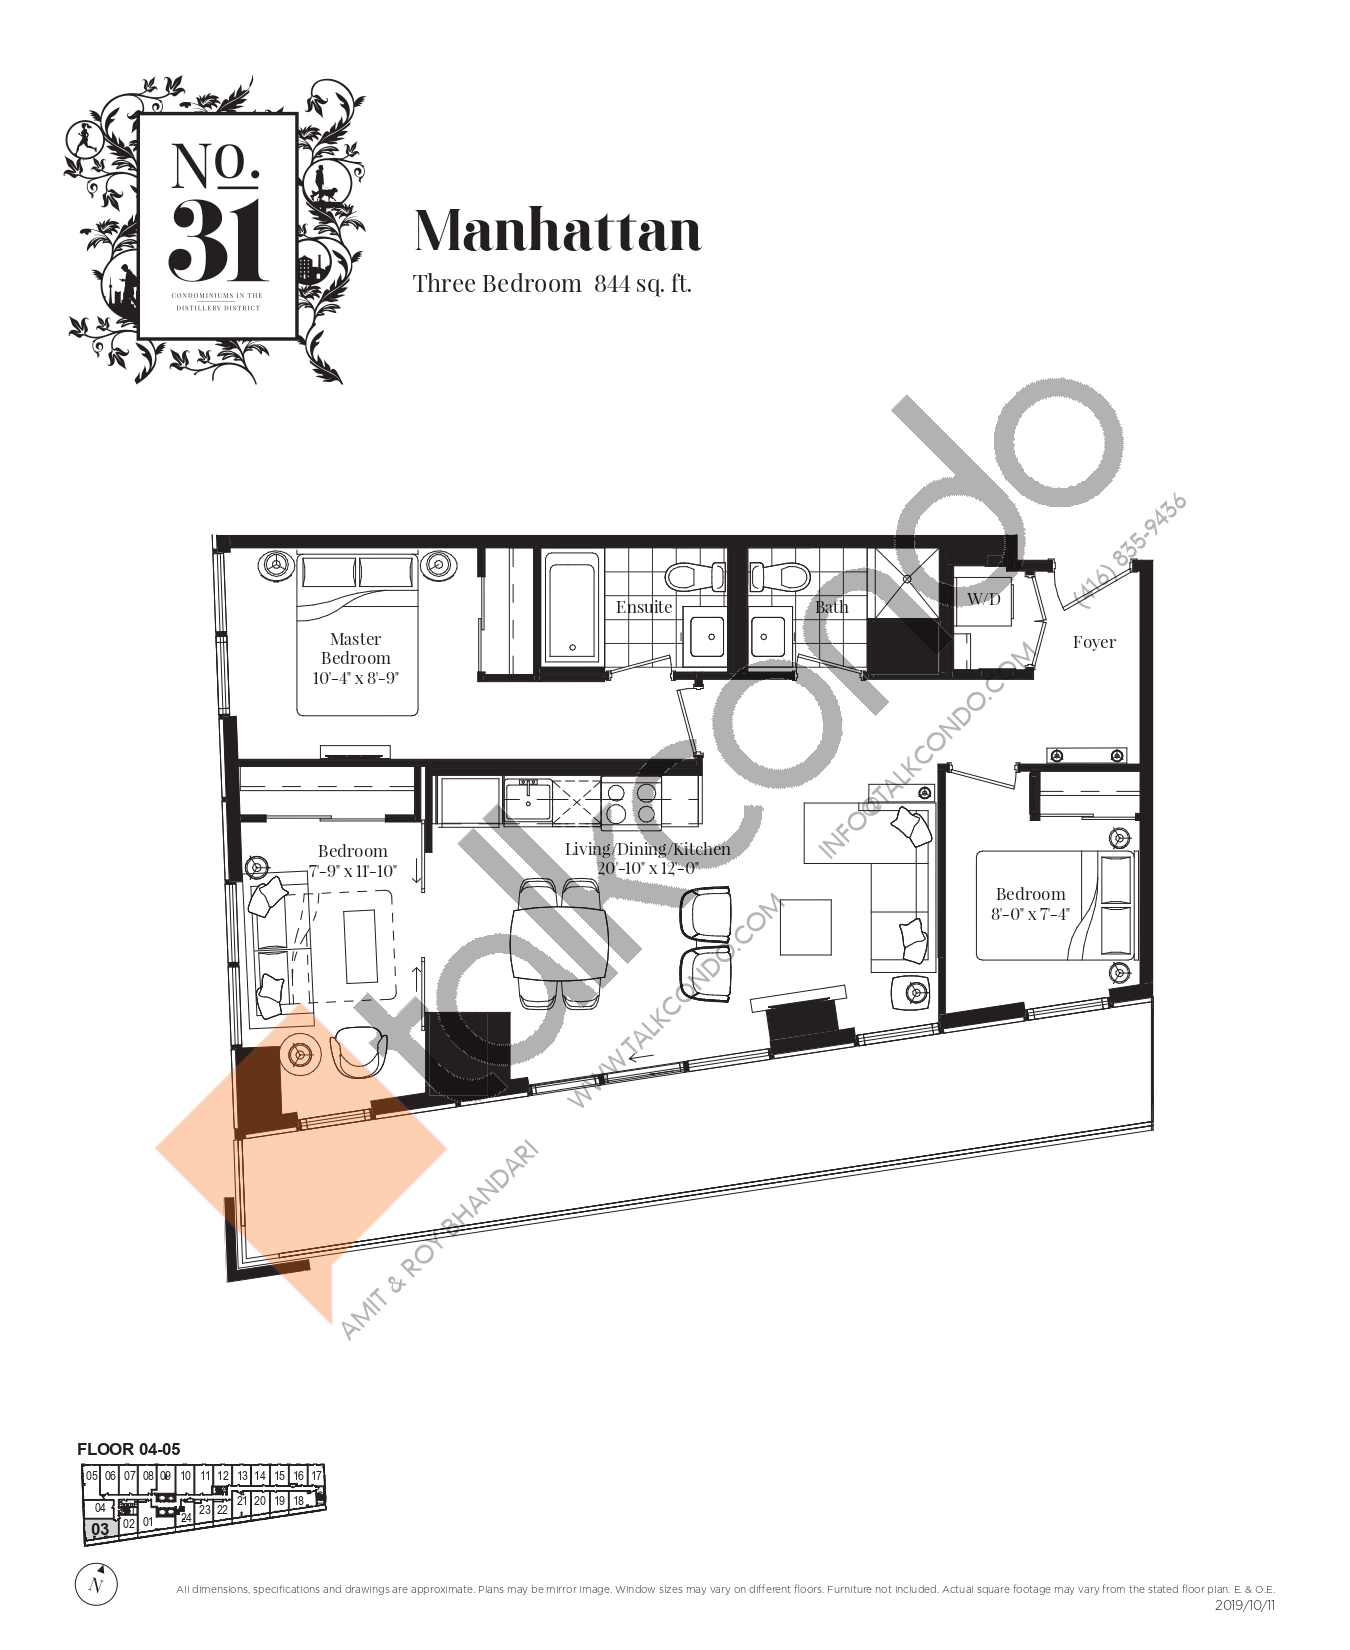 Manhattan Floor Plan at No. 31 Condos - 844 sq.ft